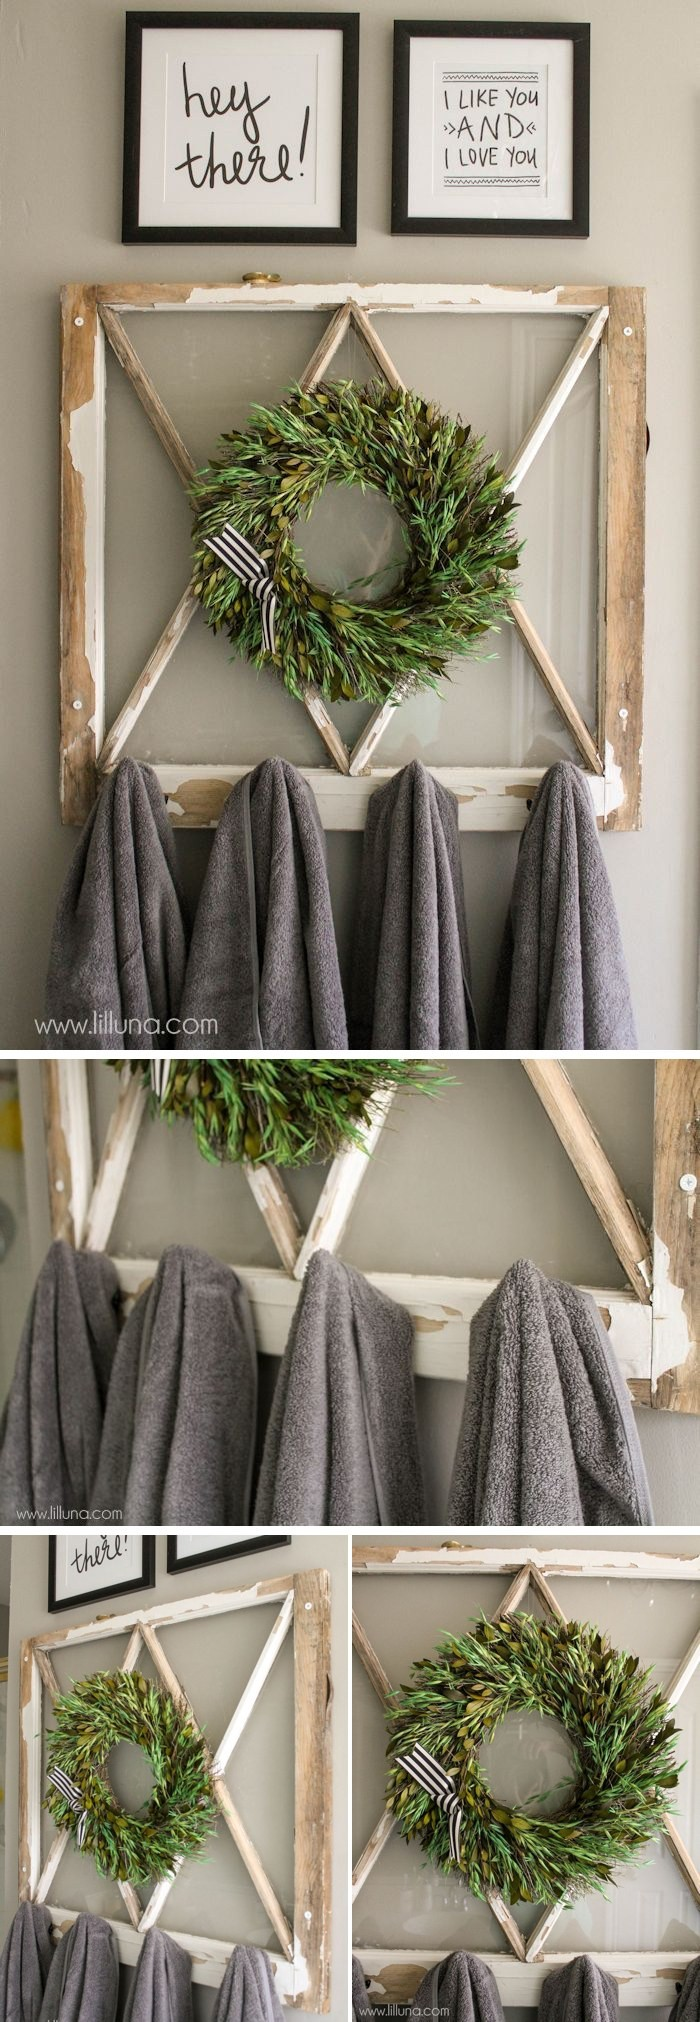 DIY Vintage Window Towel Holder 30 Creative Ways to Repurpose Old Windows